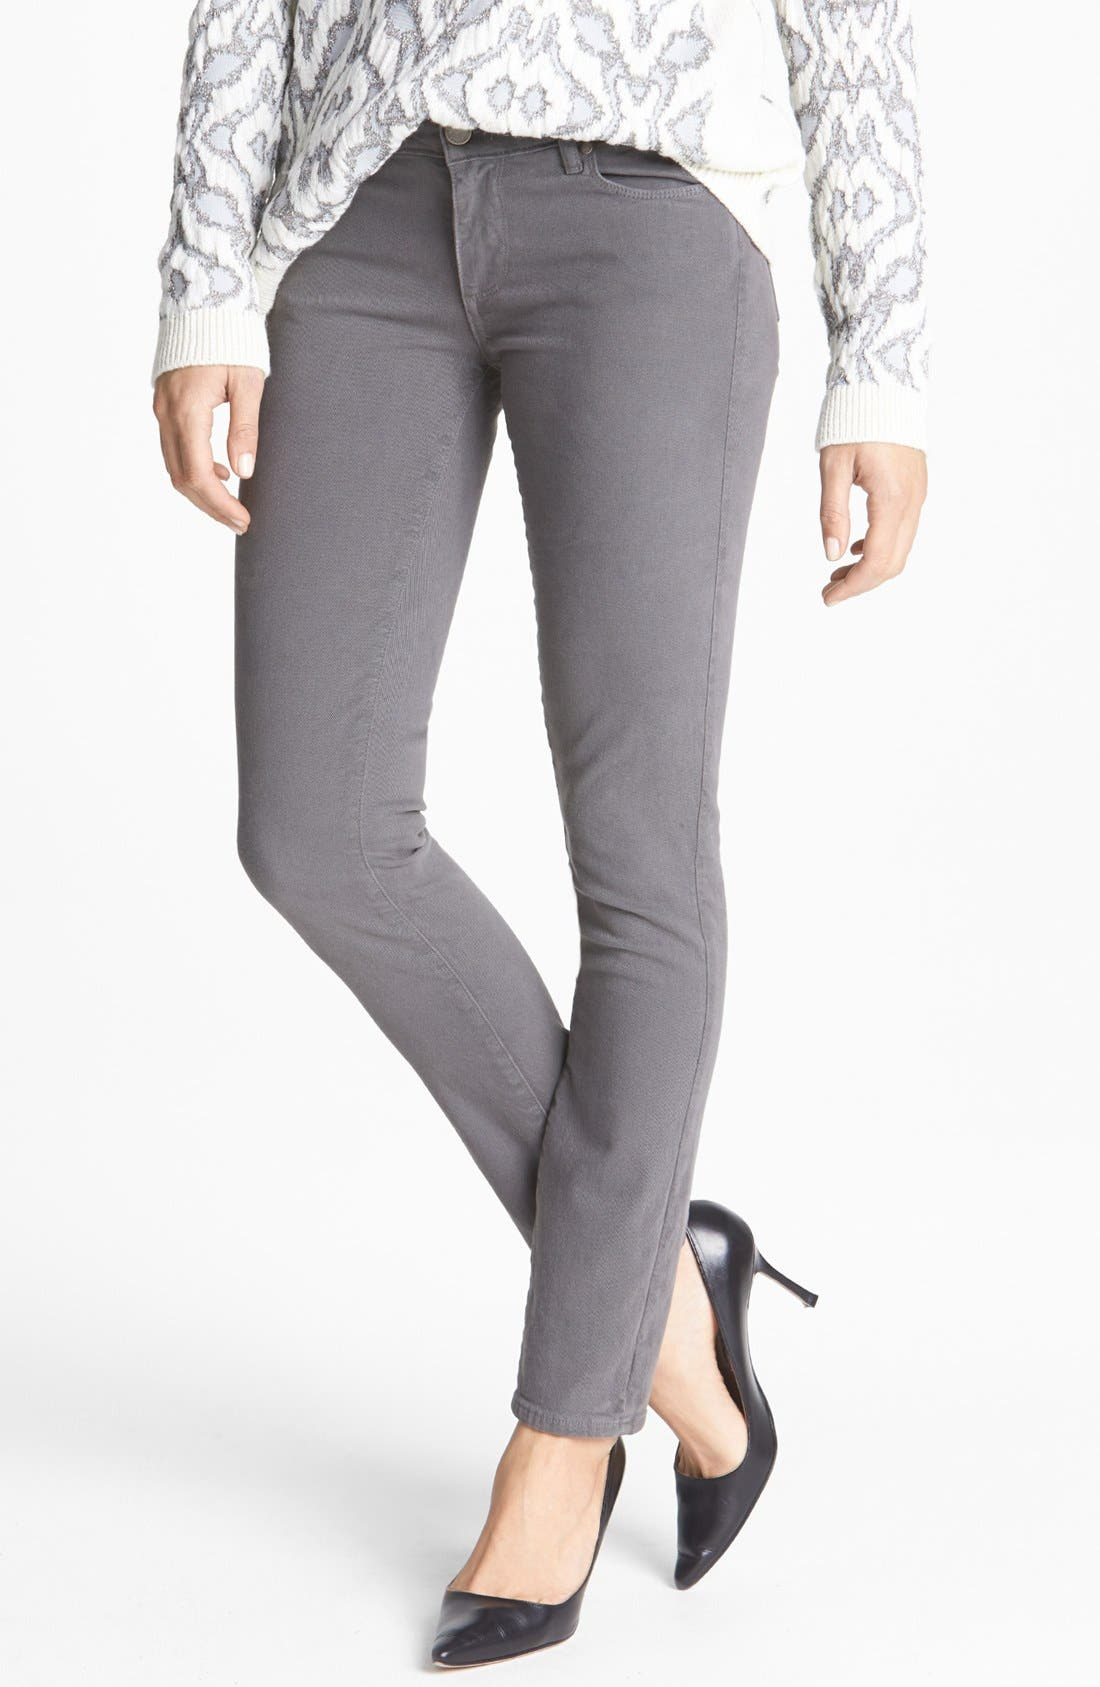 Main Image - Paige Denim 'Skyline' Stretch Skinny Jeans (Mobile)